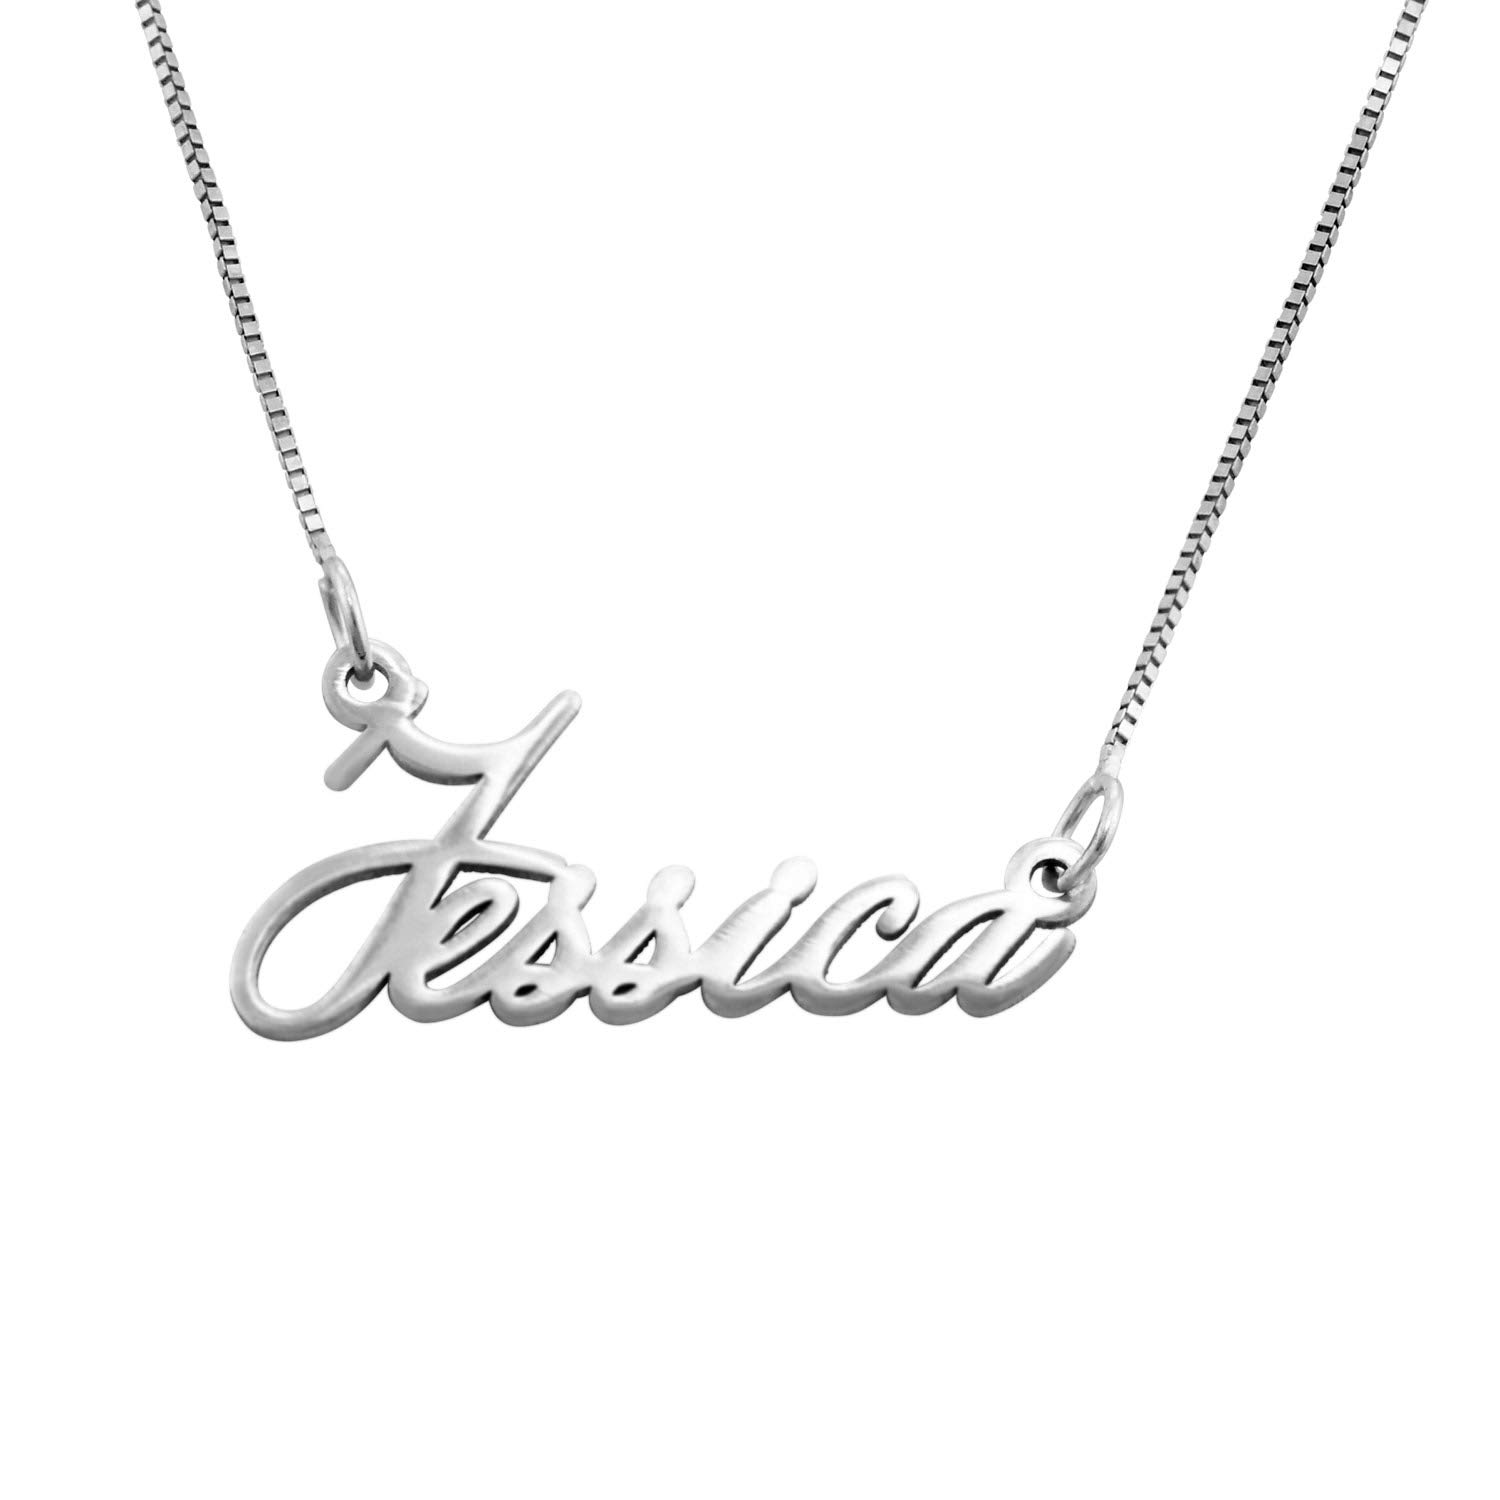 MyNameNecklace 18k Gold Plated Extra Small Name Necklace- Personalized Jewelry - Extra Strength Pendant (white-gold-14K)